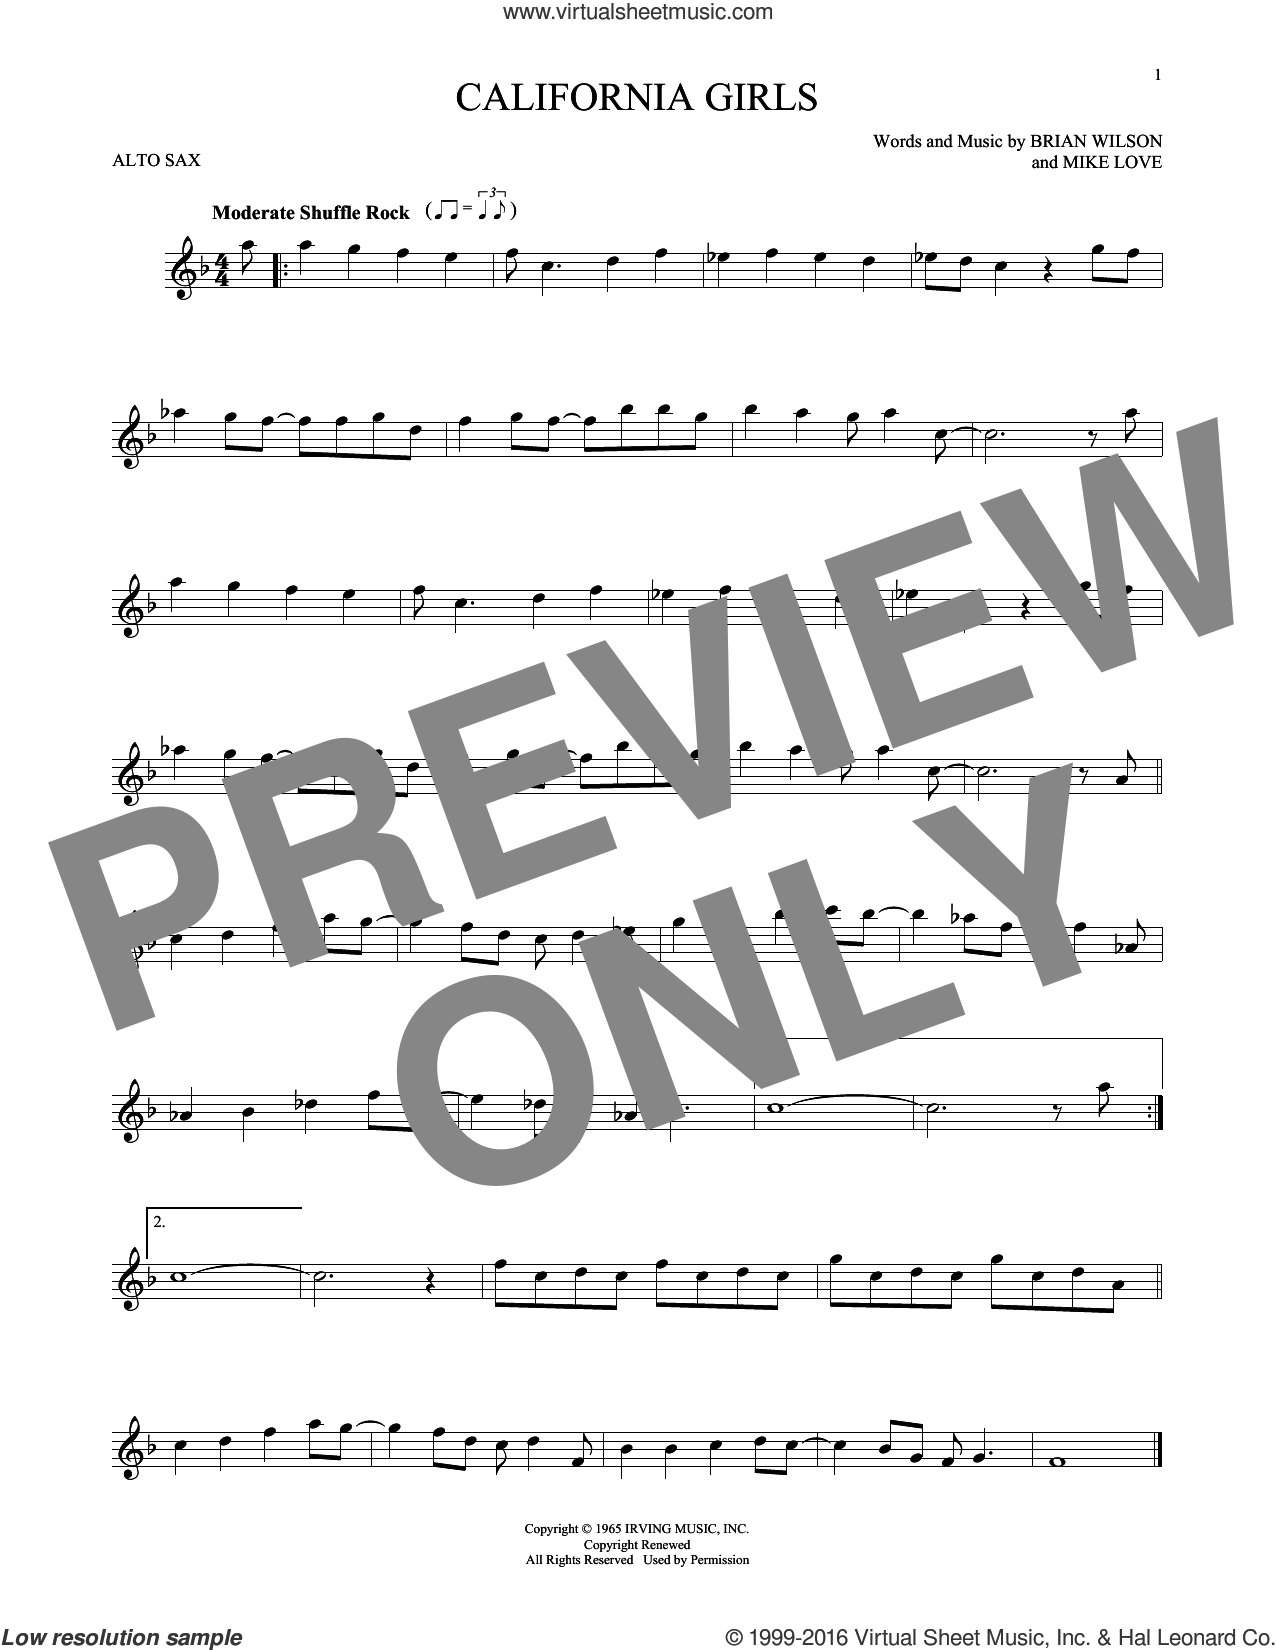 California Girls sheet music for alto saxophone solo by The Beach Boys, David Lee Roth, Brian Wilson and Mike Love, intermediate skill level